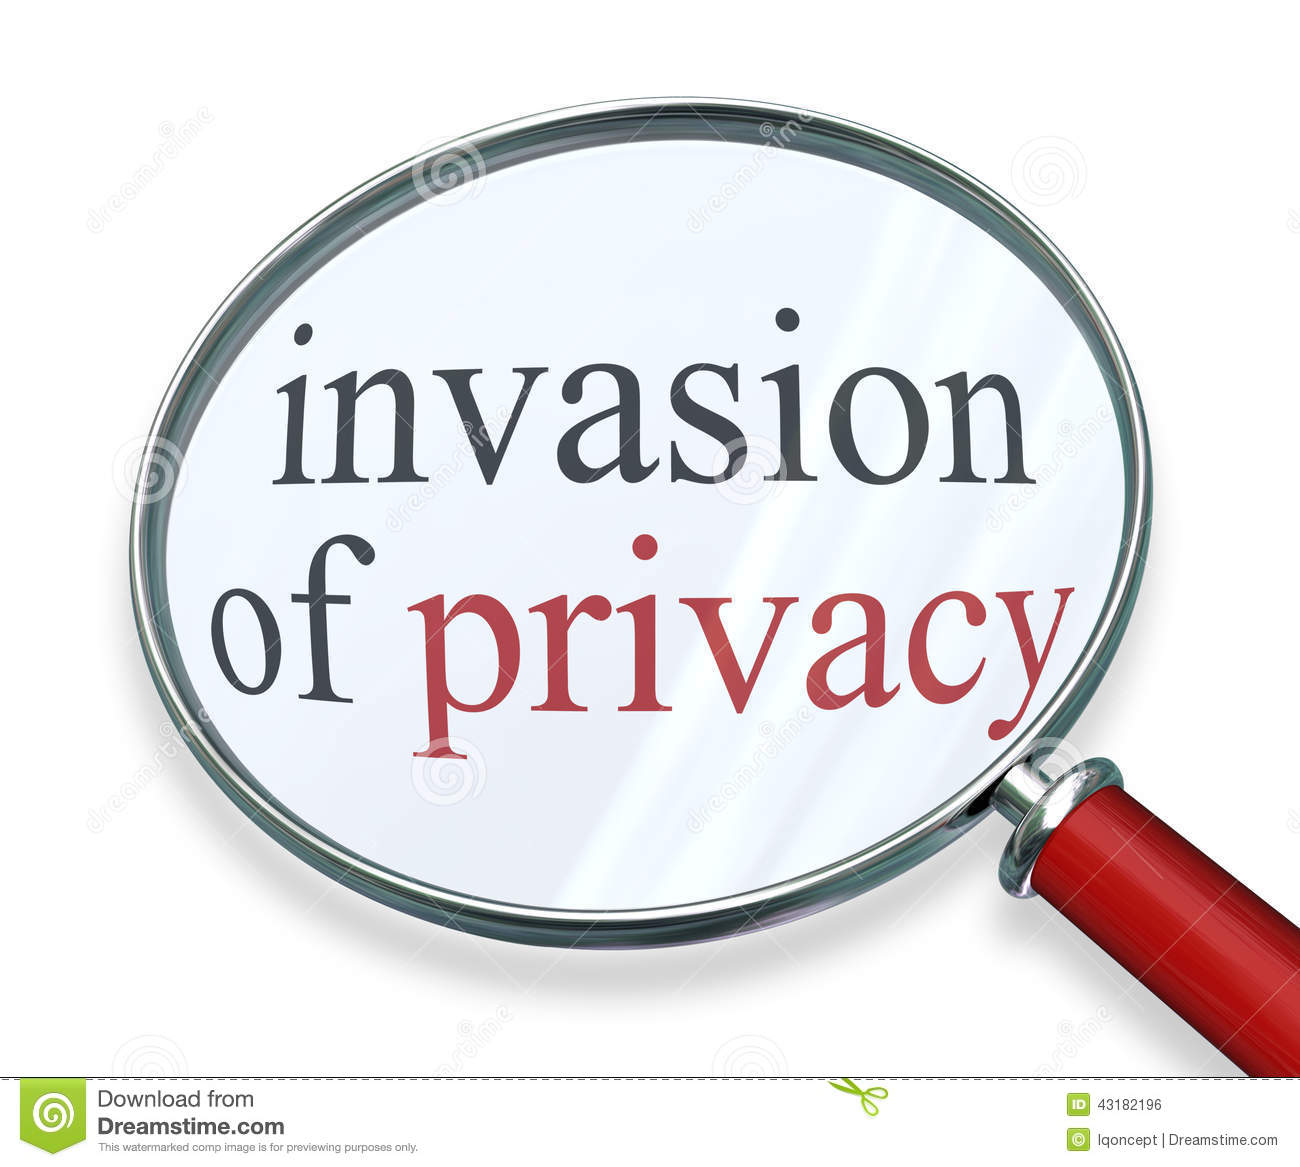 invasion privacy by technology Technology is slowly emerging into critical stages of invasion and negligence of personal privacy web 20 allows people to communicate with each other without speaking one word web 20 allows people to communicate with each other without speaking one word.